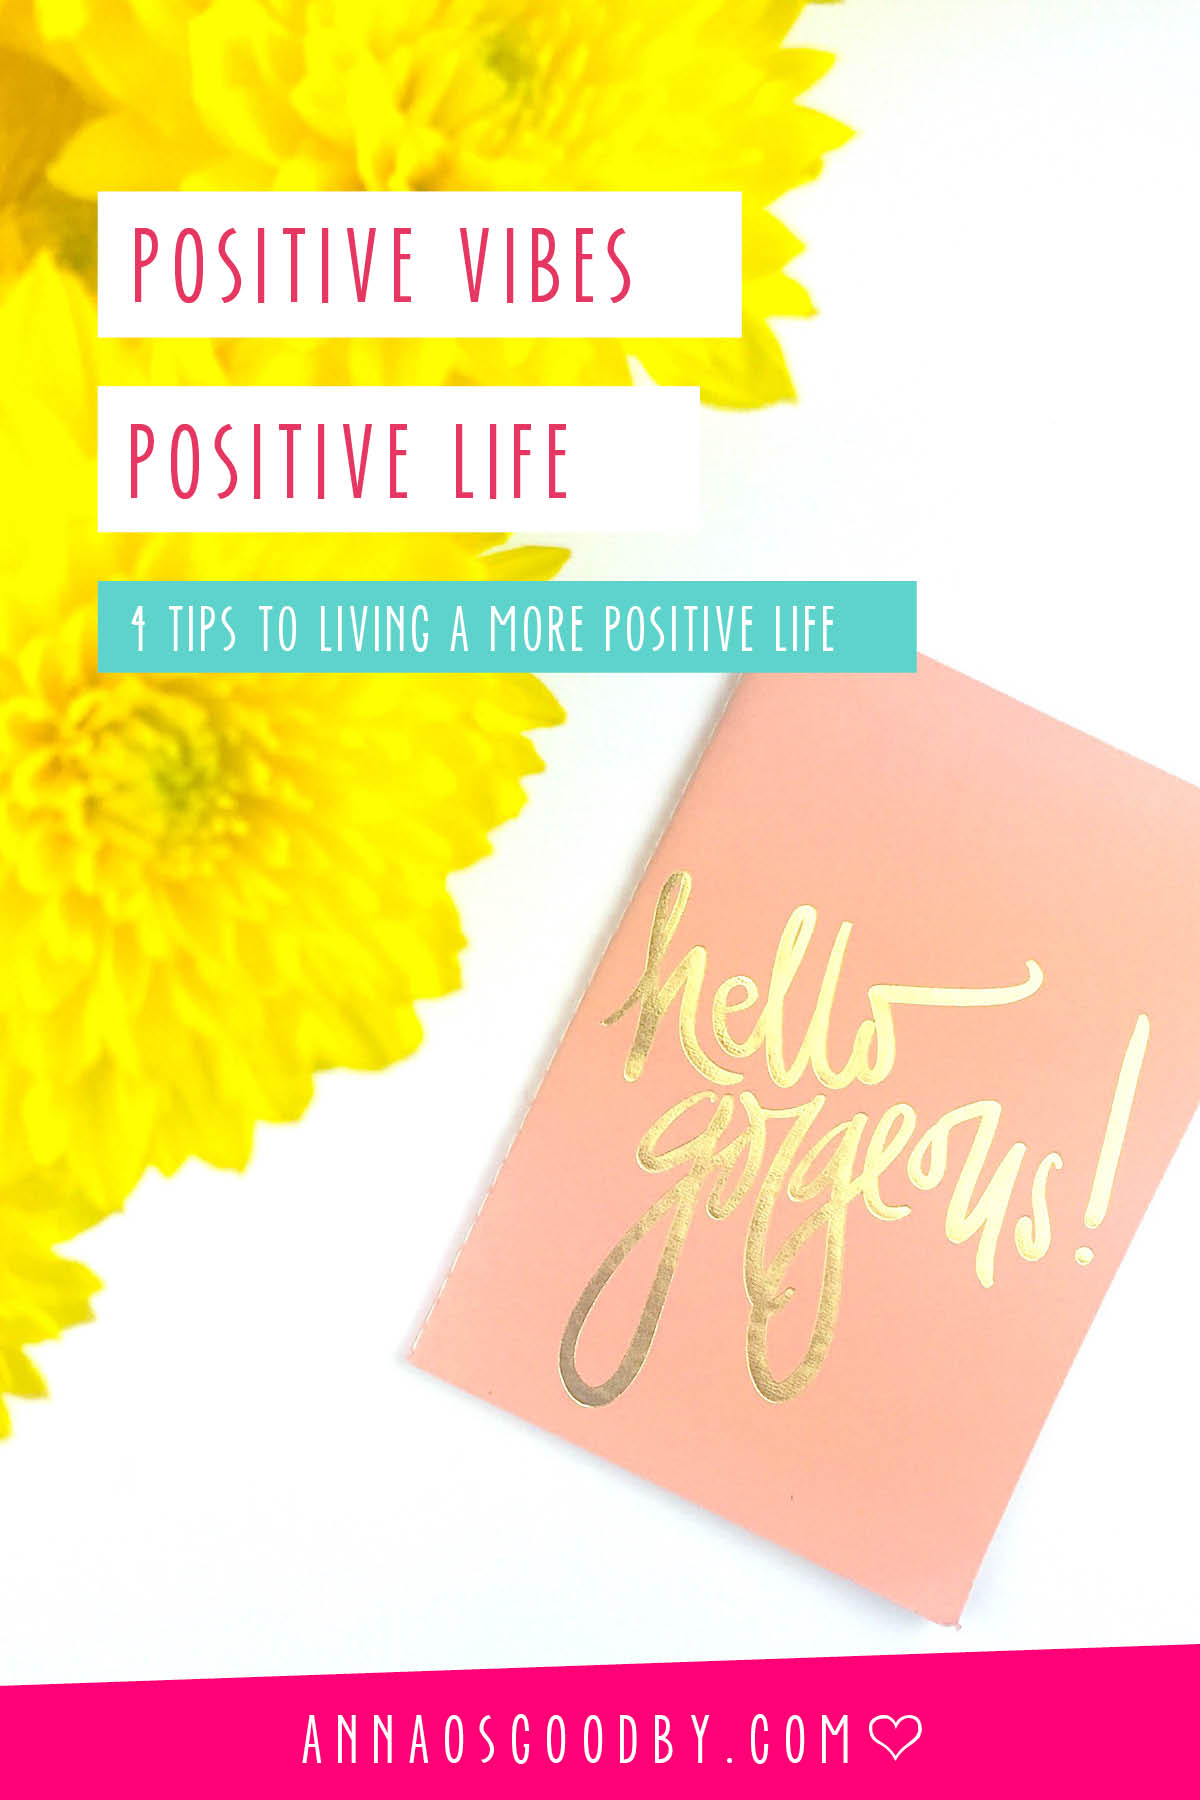 Anna Osgoodby Life + Design :: Positive Vibes, Positive Life 4 Tips to Living a More Positive Life